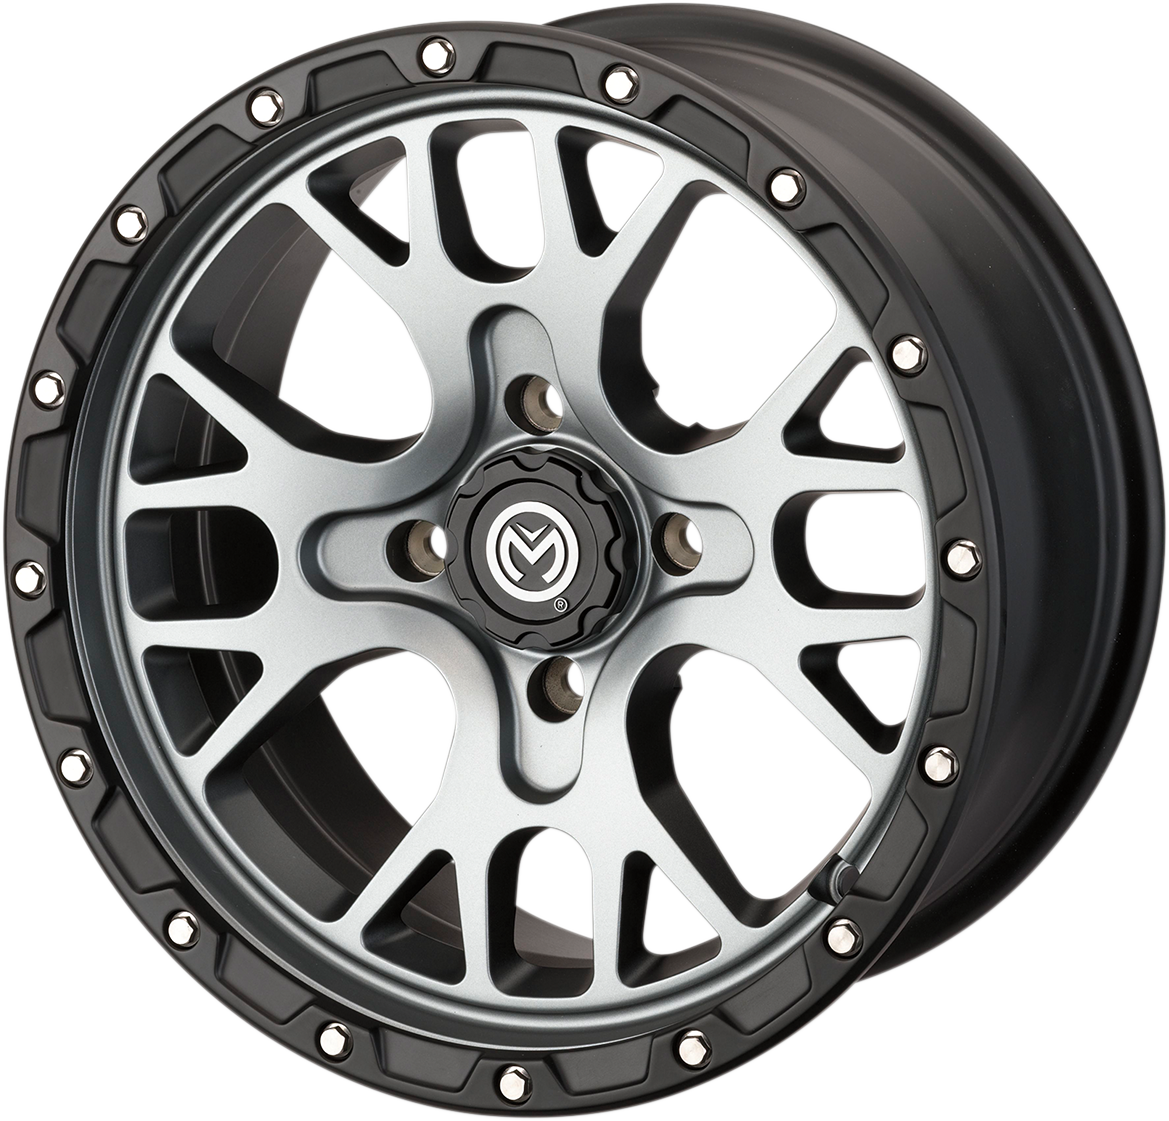 Moose 15x7 4/136 4+3 545X Satin Gray & Black Rocker vannesarja Can-Am